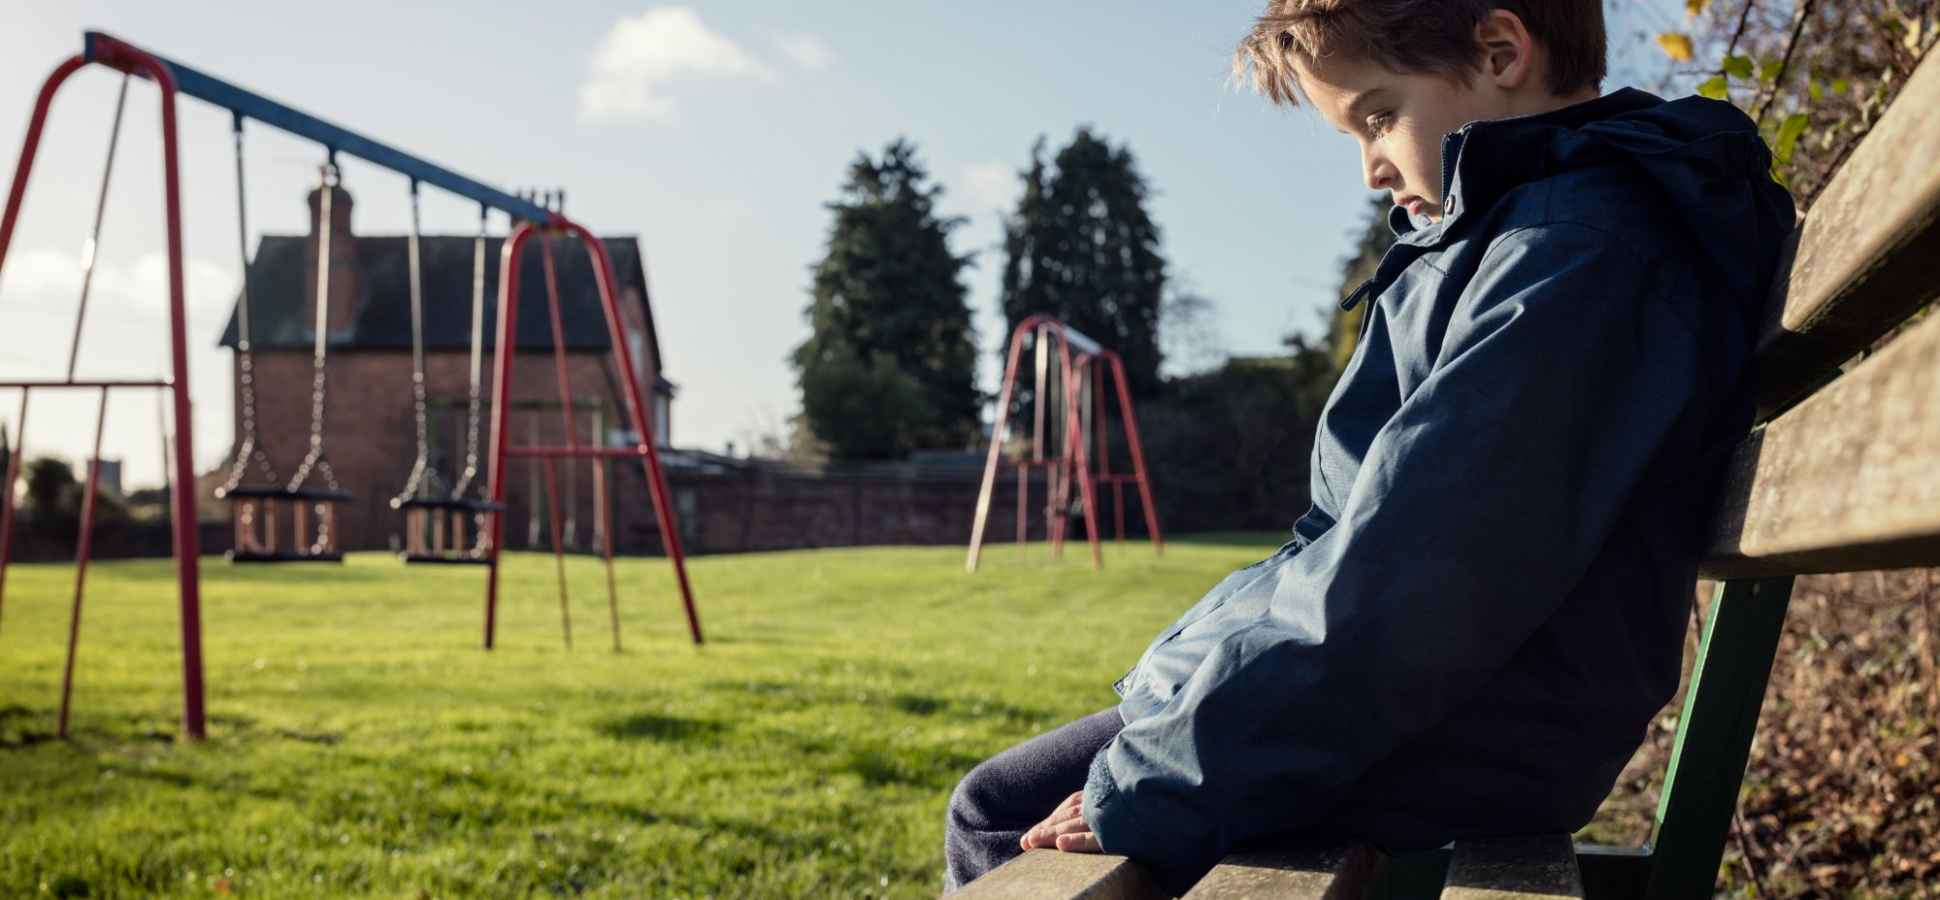 Bored Kids? Here's What's Missing to Make Their Creativity Explode